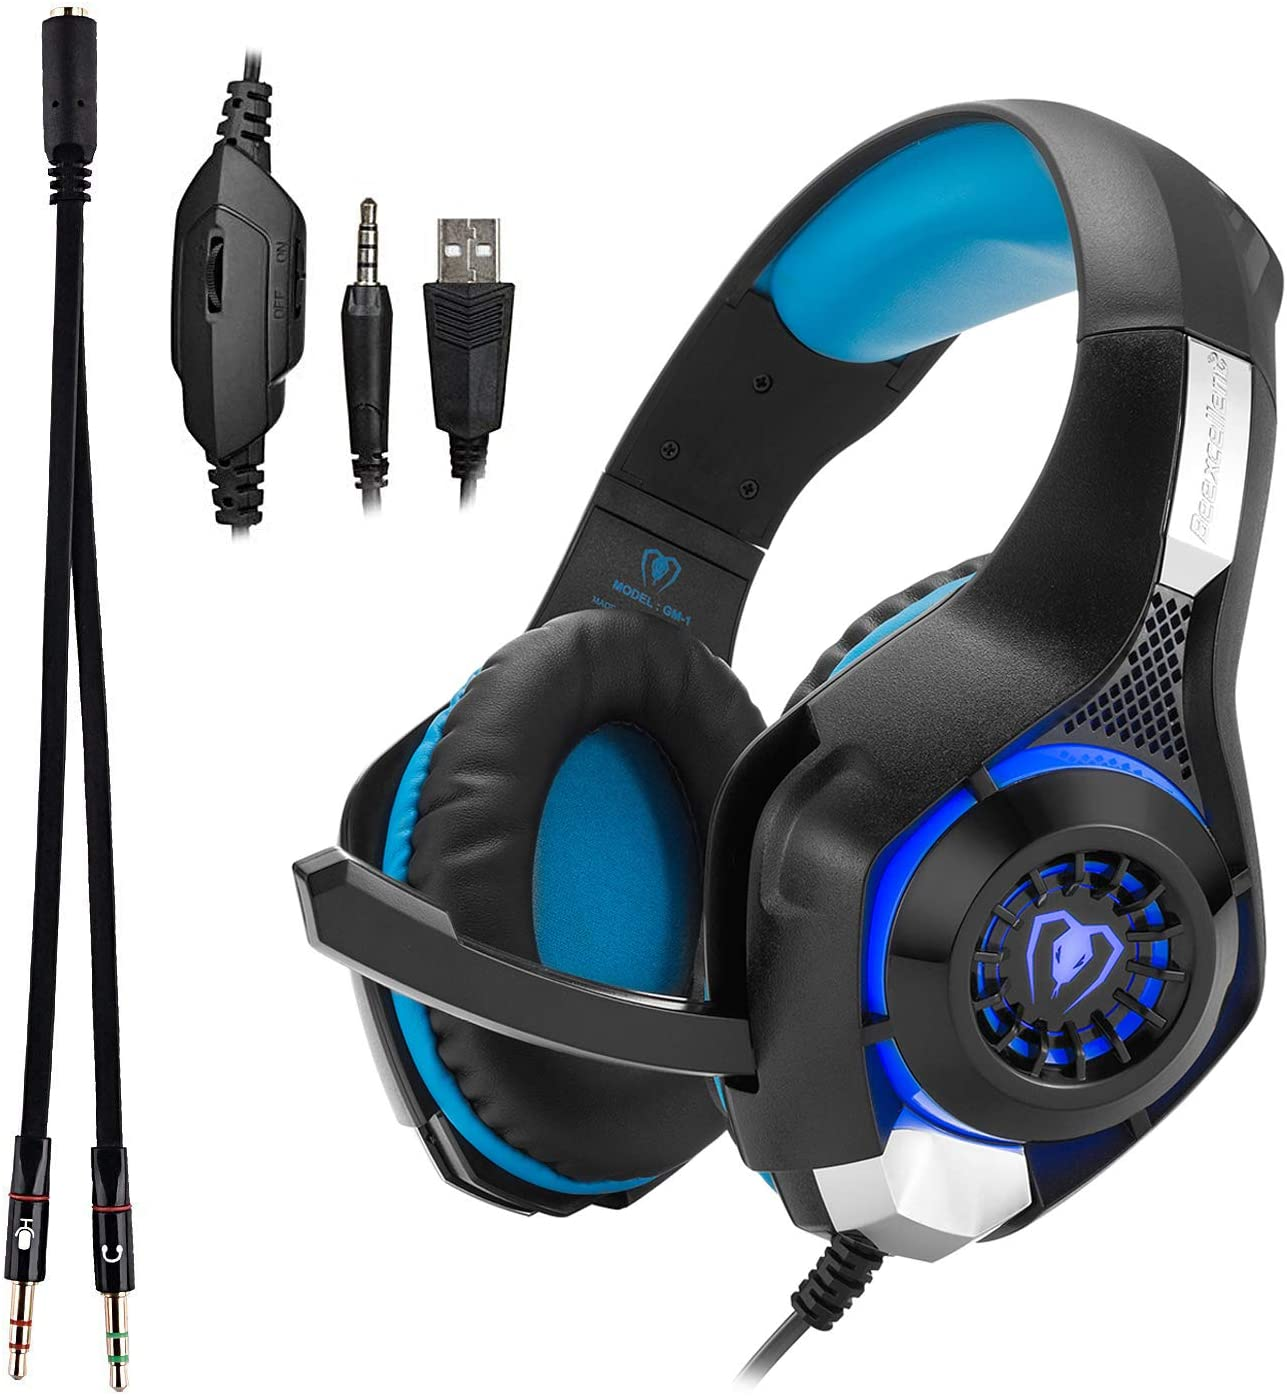 Beexcellent GM-1 Over-Ear Wired 3.5mm Pro Gaming Headset Surround Sound Gaming Headphone with LED Effect and Microphone for PC, Laptop, Tablet, PS4, Xbox, Cell Phone (Blue)